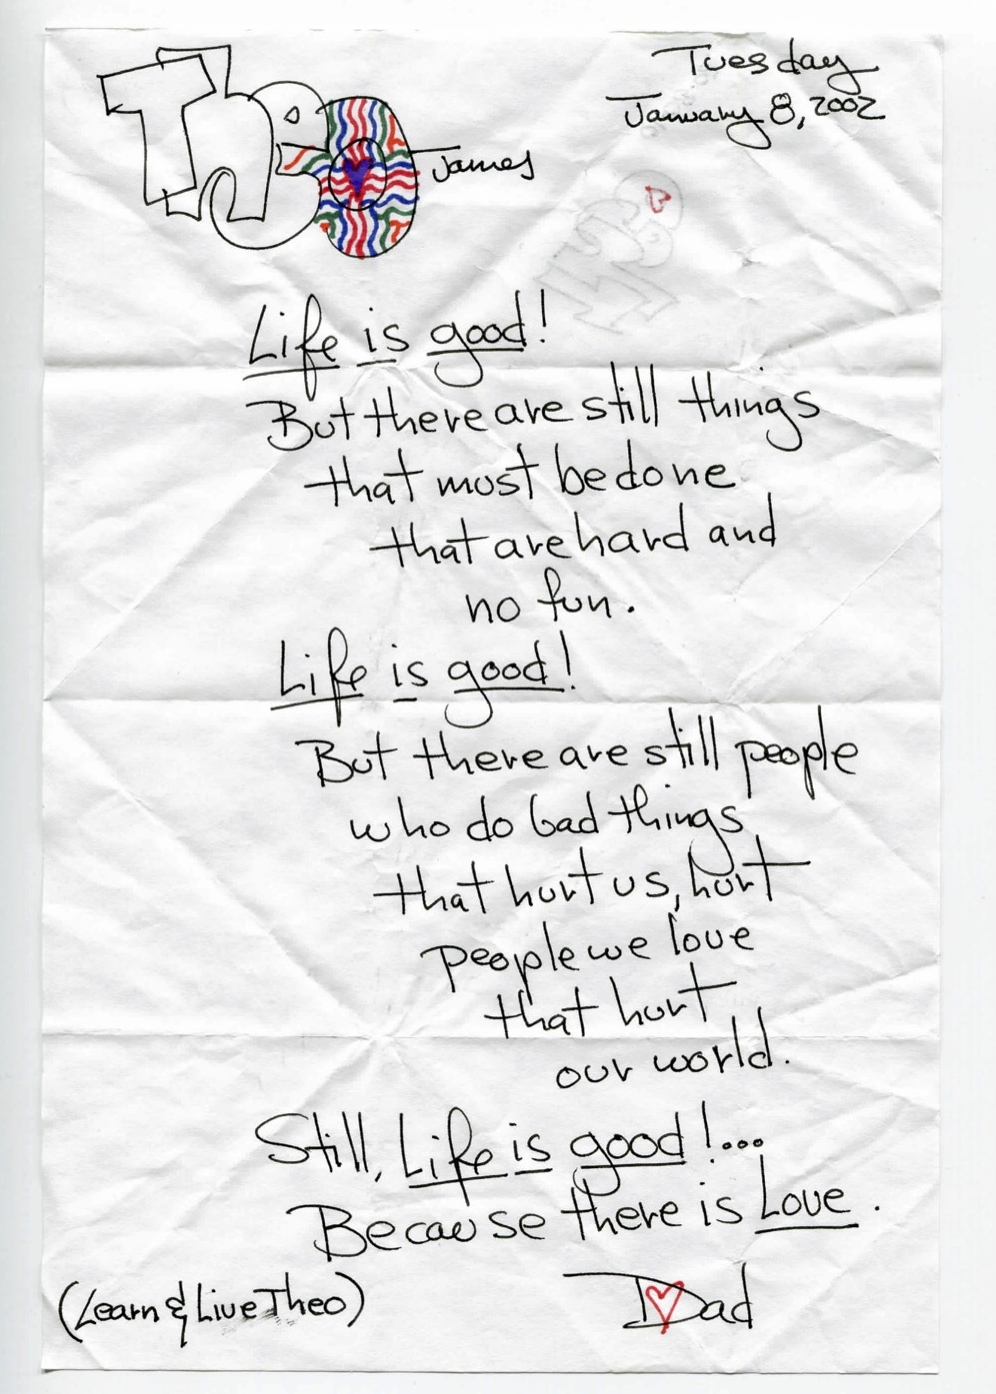 Life is good! But there are still things that must be done that are hard and no fun.Life is good! But there are still people who do bad things that hurt us, hurt people we love, that hurt our world.Still, life is good! ... Because there is Love.  (Learn & Live Theo)